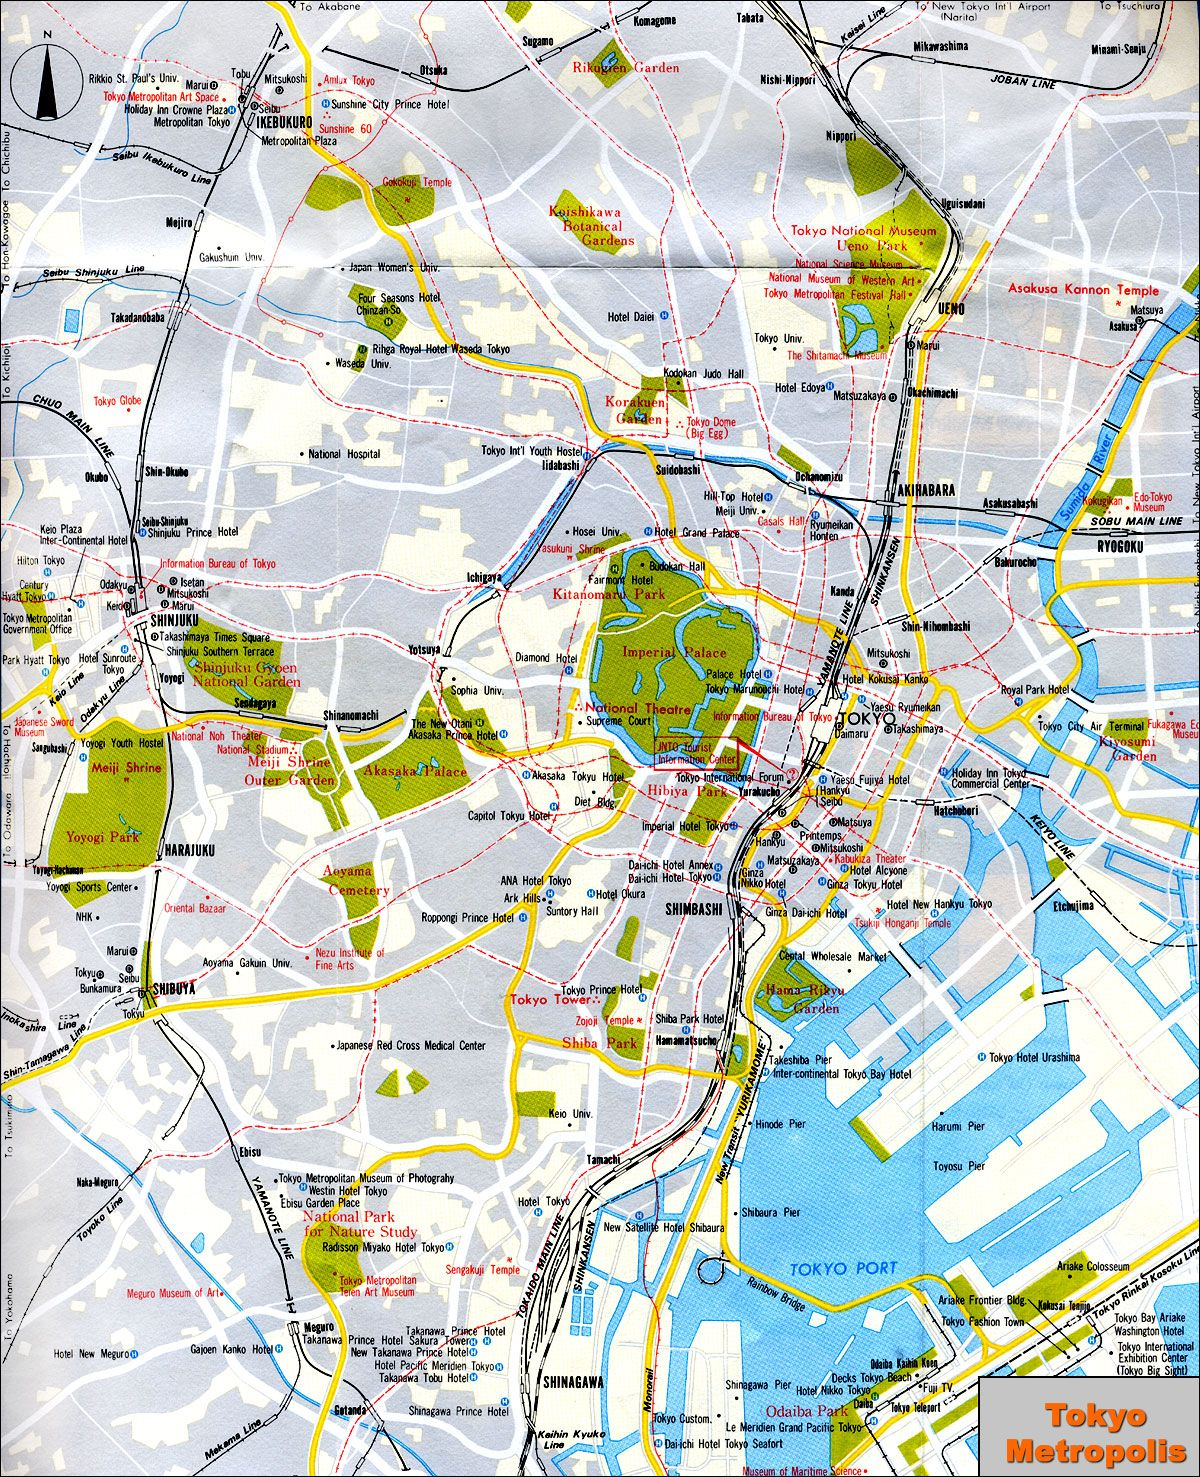 Tokyo Japan Tourist Map Tokyo Japan Mappery Maps Pinterest - Japan map english version